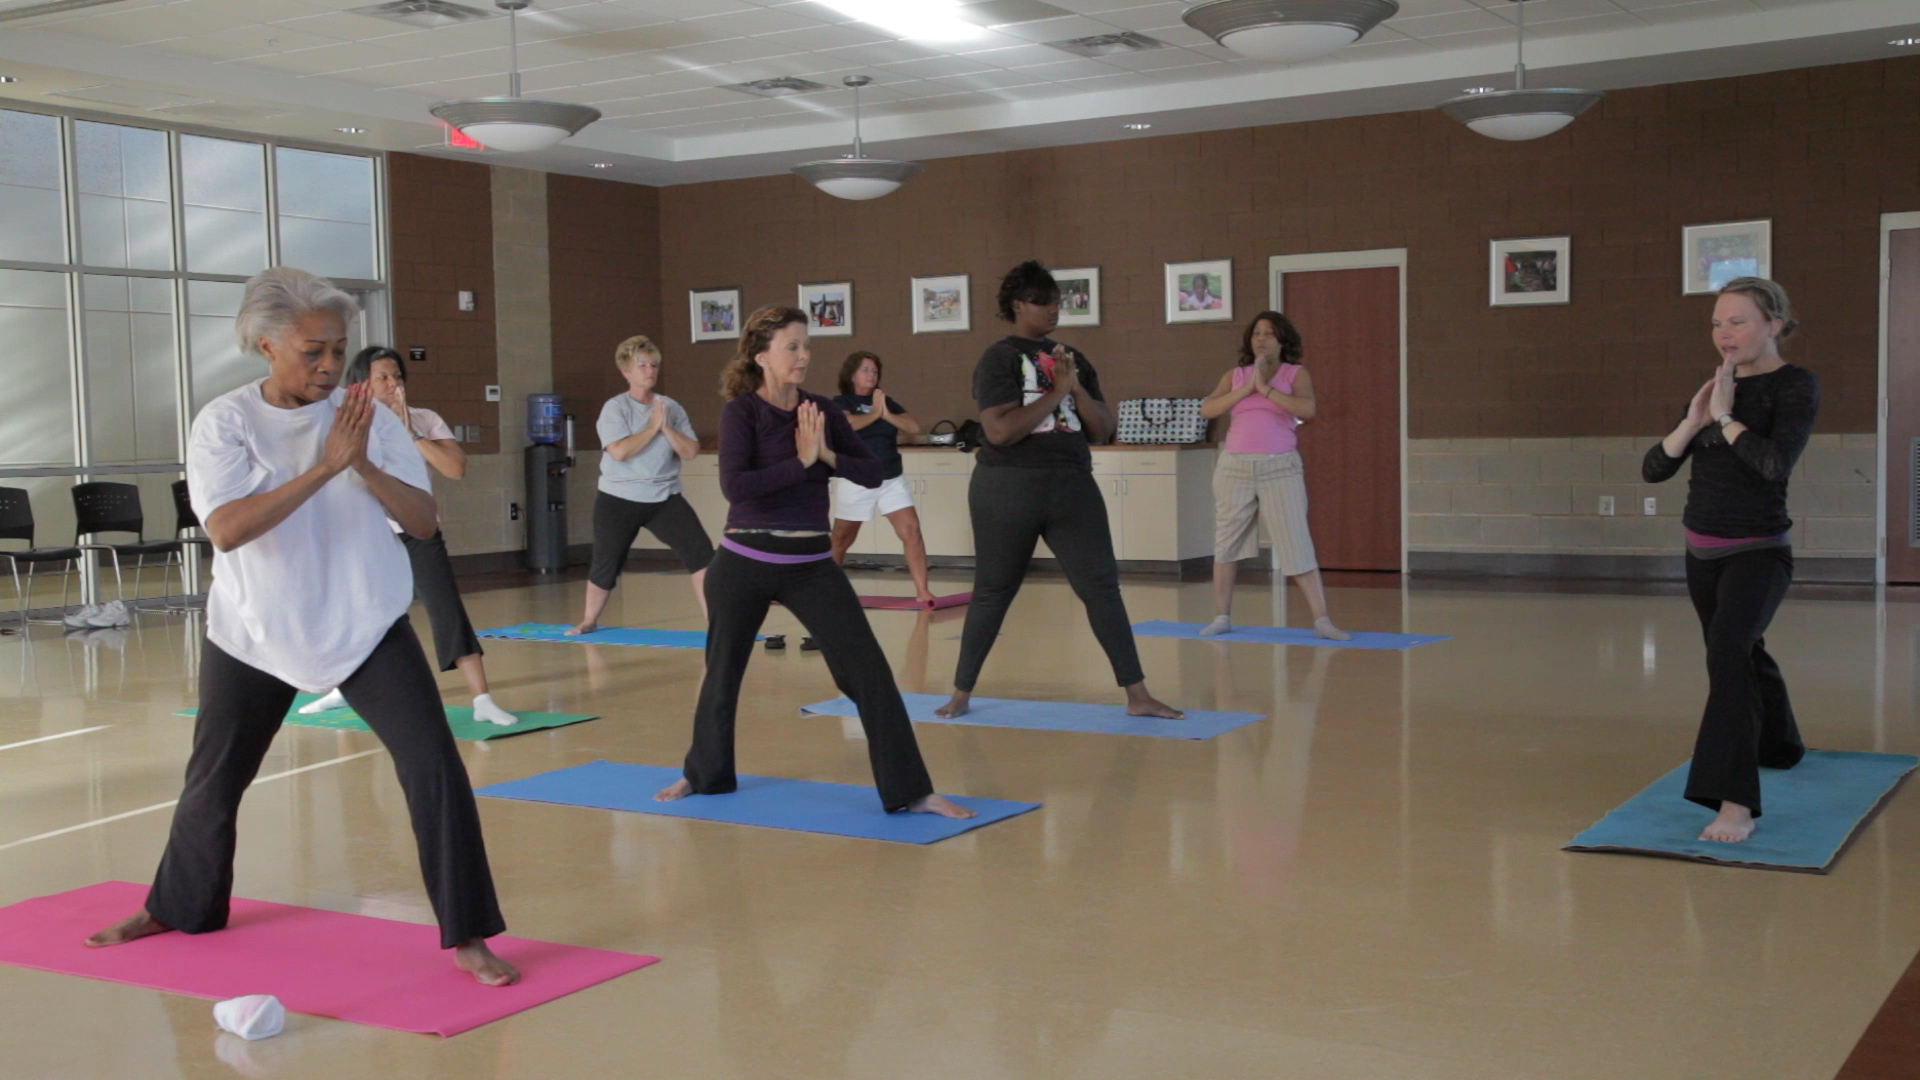 Yoga and a wide variety of other wellness and exercise classes are offered at C.C. Woodson.